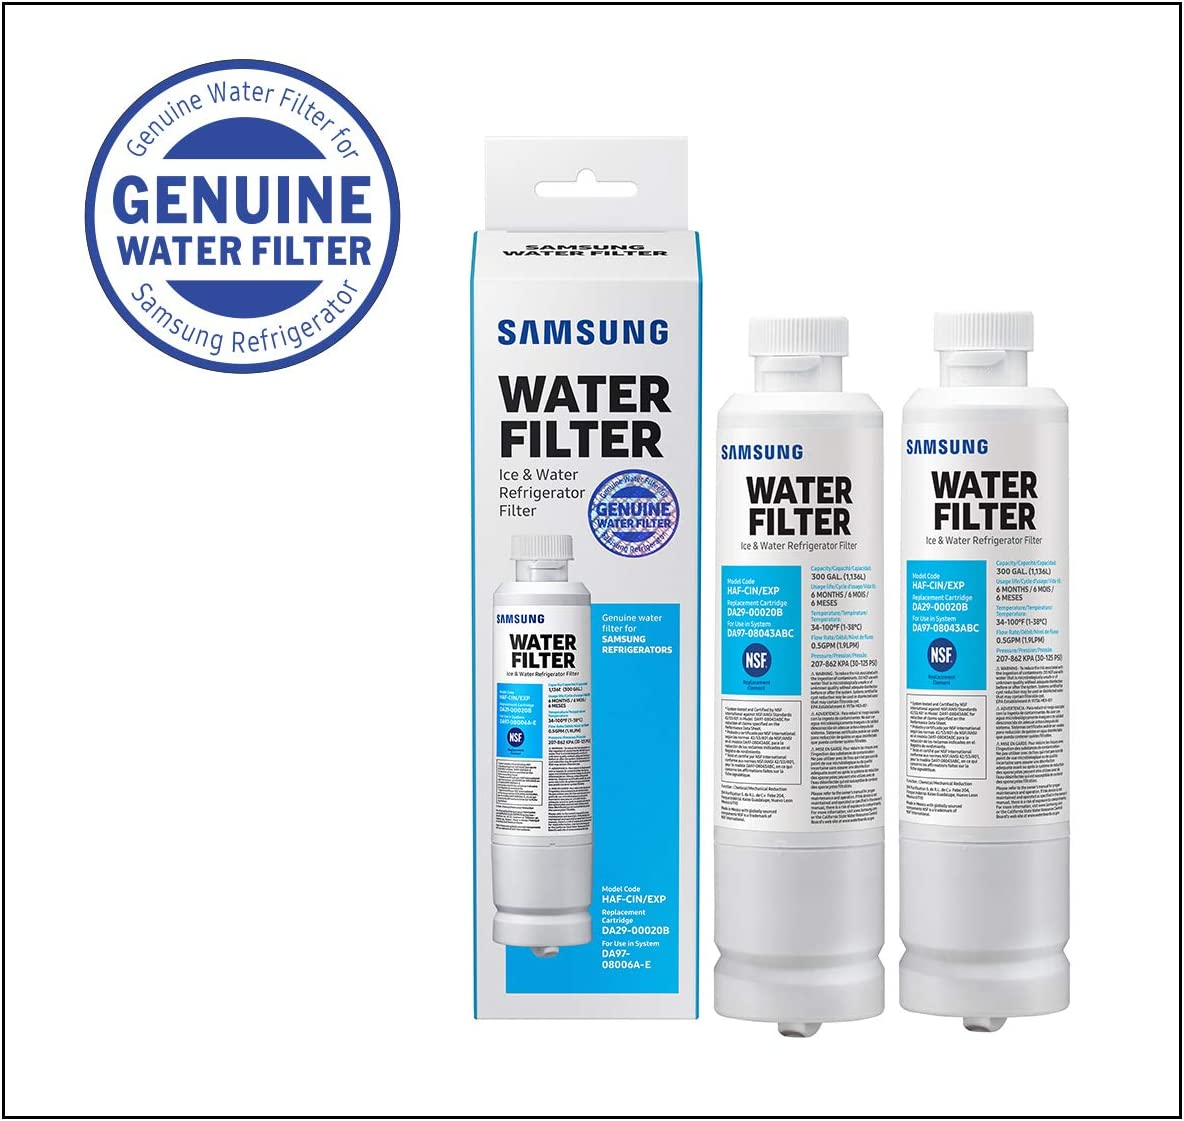 Samsung Electronics HAF-CIN Refrigerator Water Filter